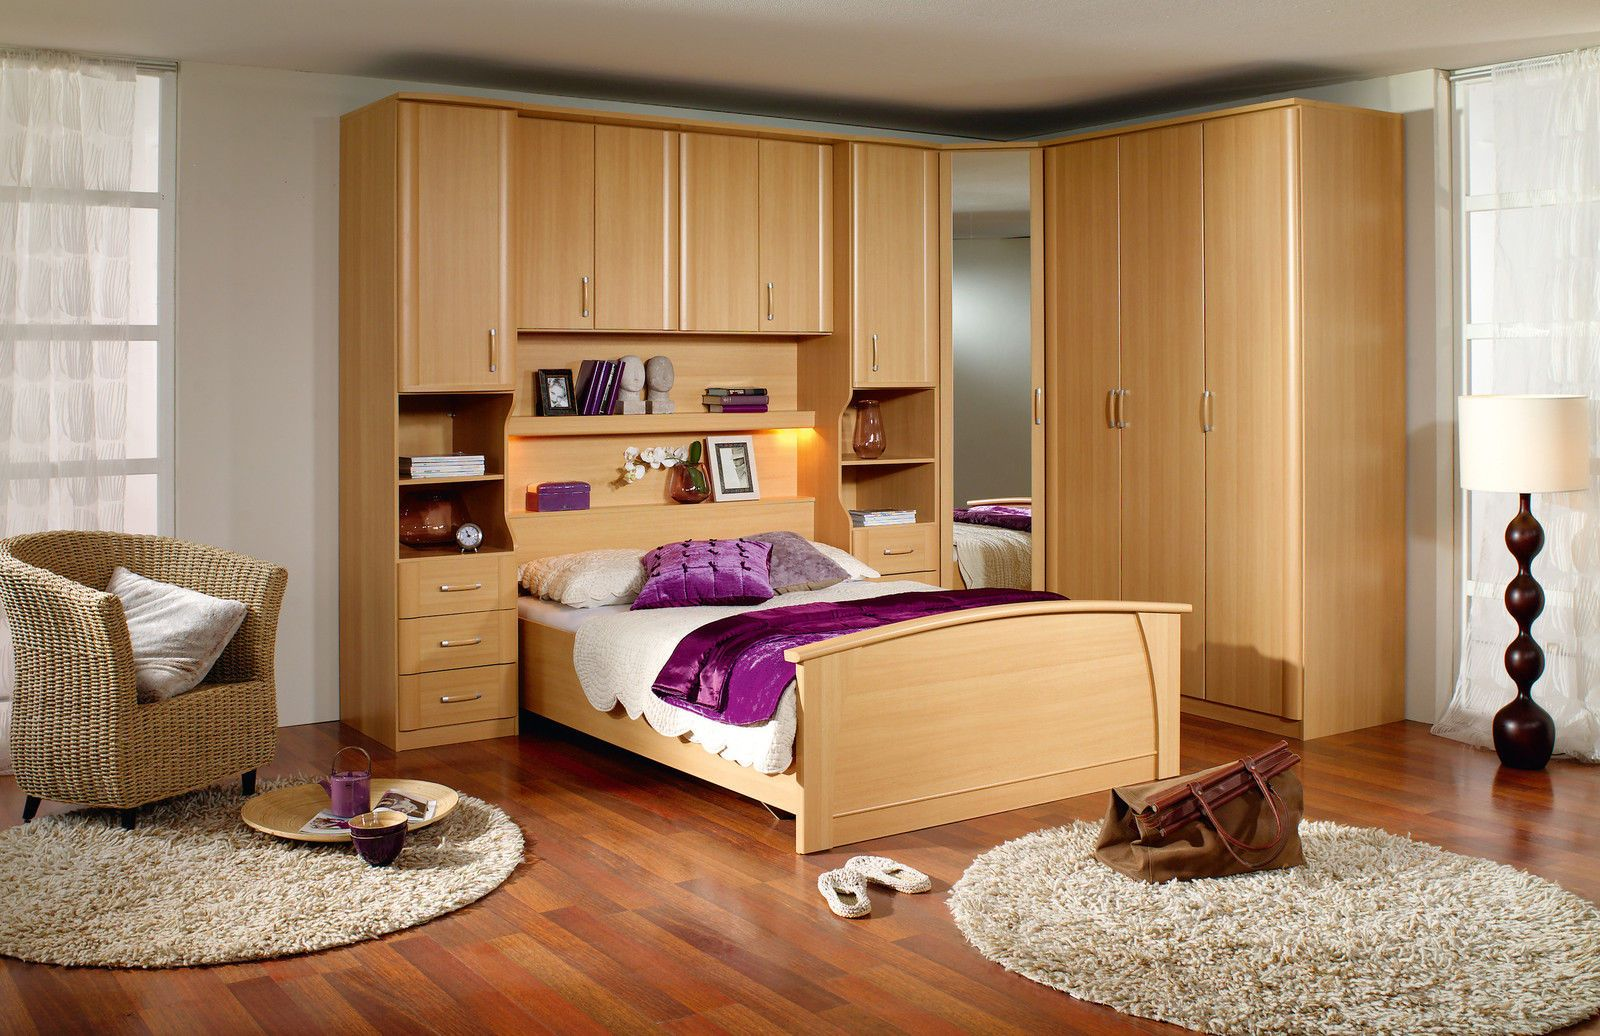 Overbed Bedroom Furniture Rauch Overbed Unit And Wardrobes Excluding Bedframe Wardrobes